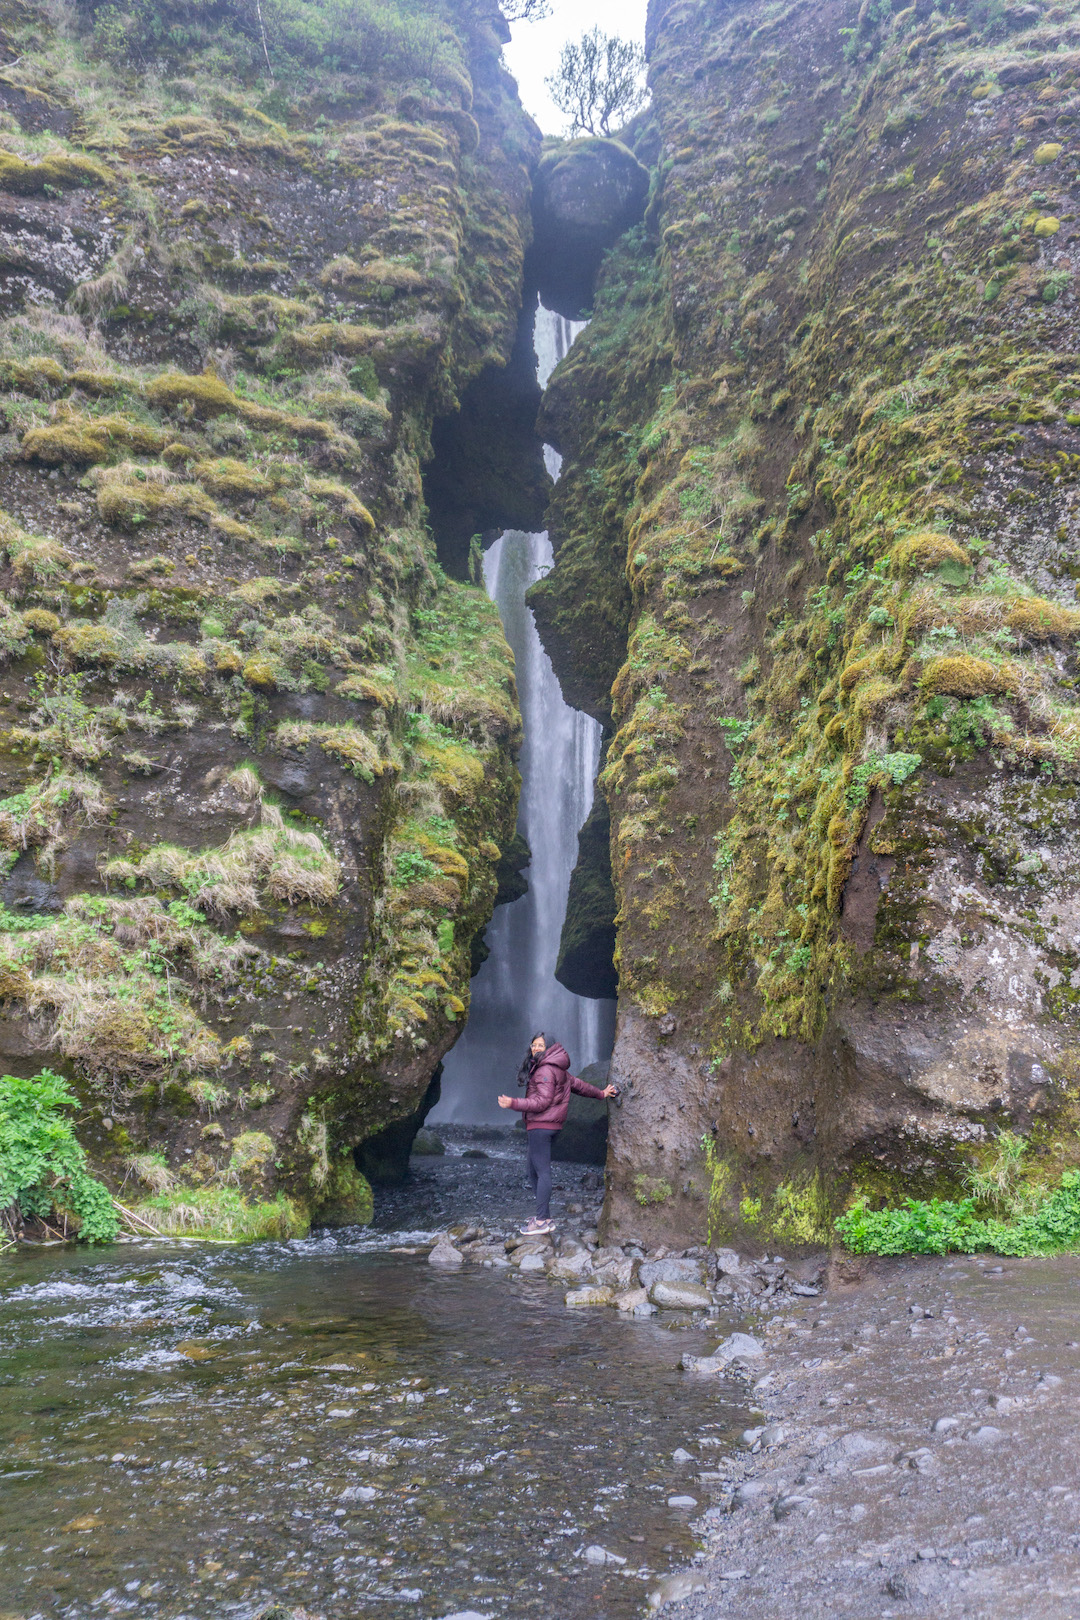 Her Travel Edit at the Secret Waterfall in Iceland